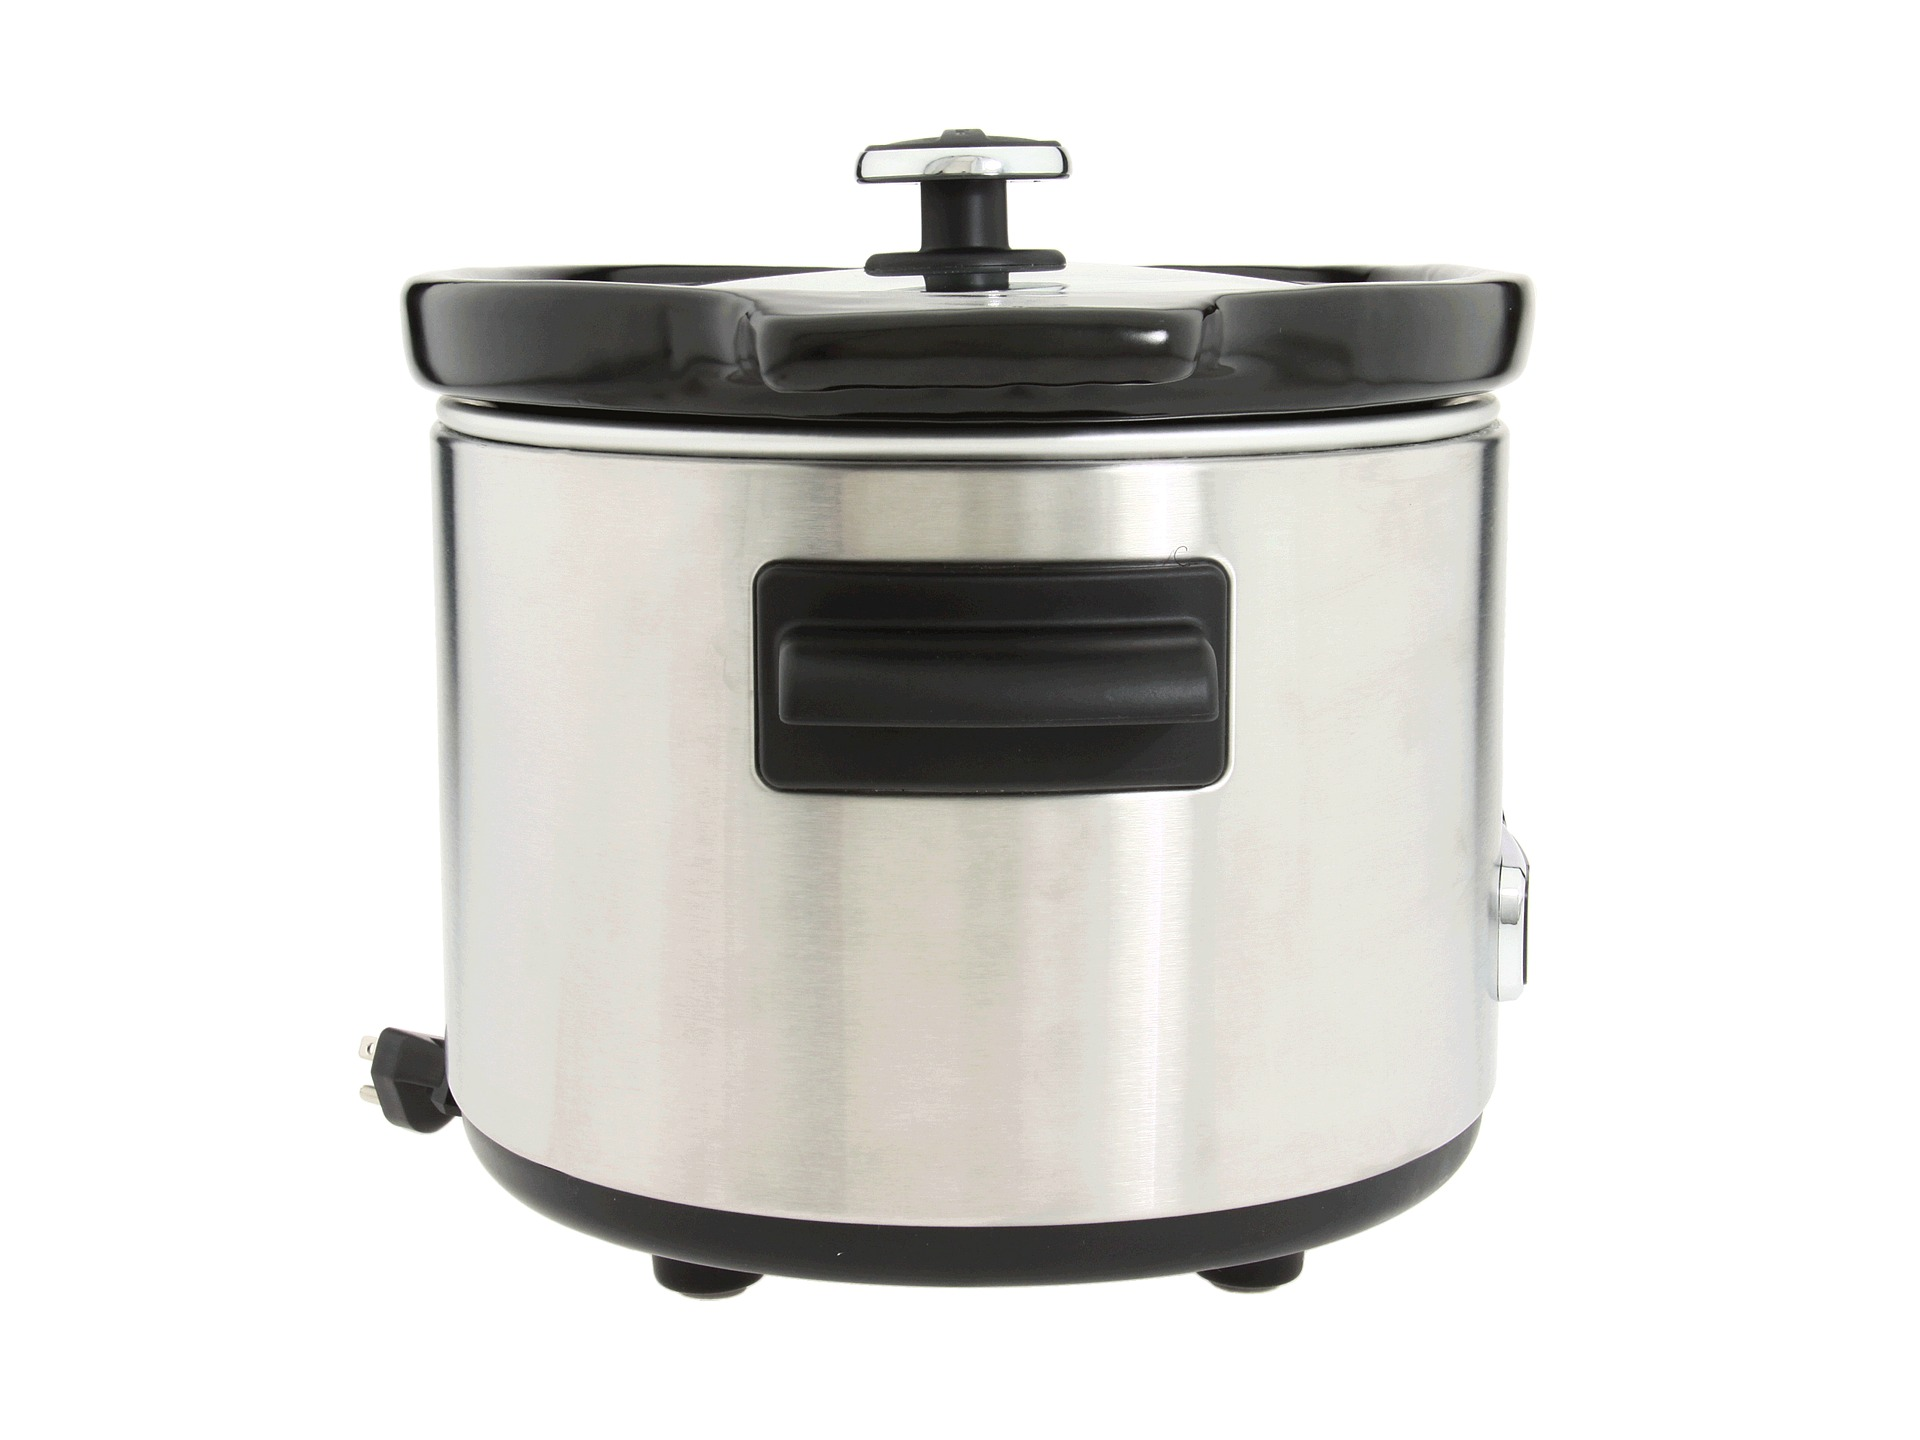 kitchenaid slow cooker 7 quart new flue tile